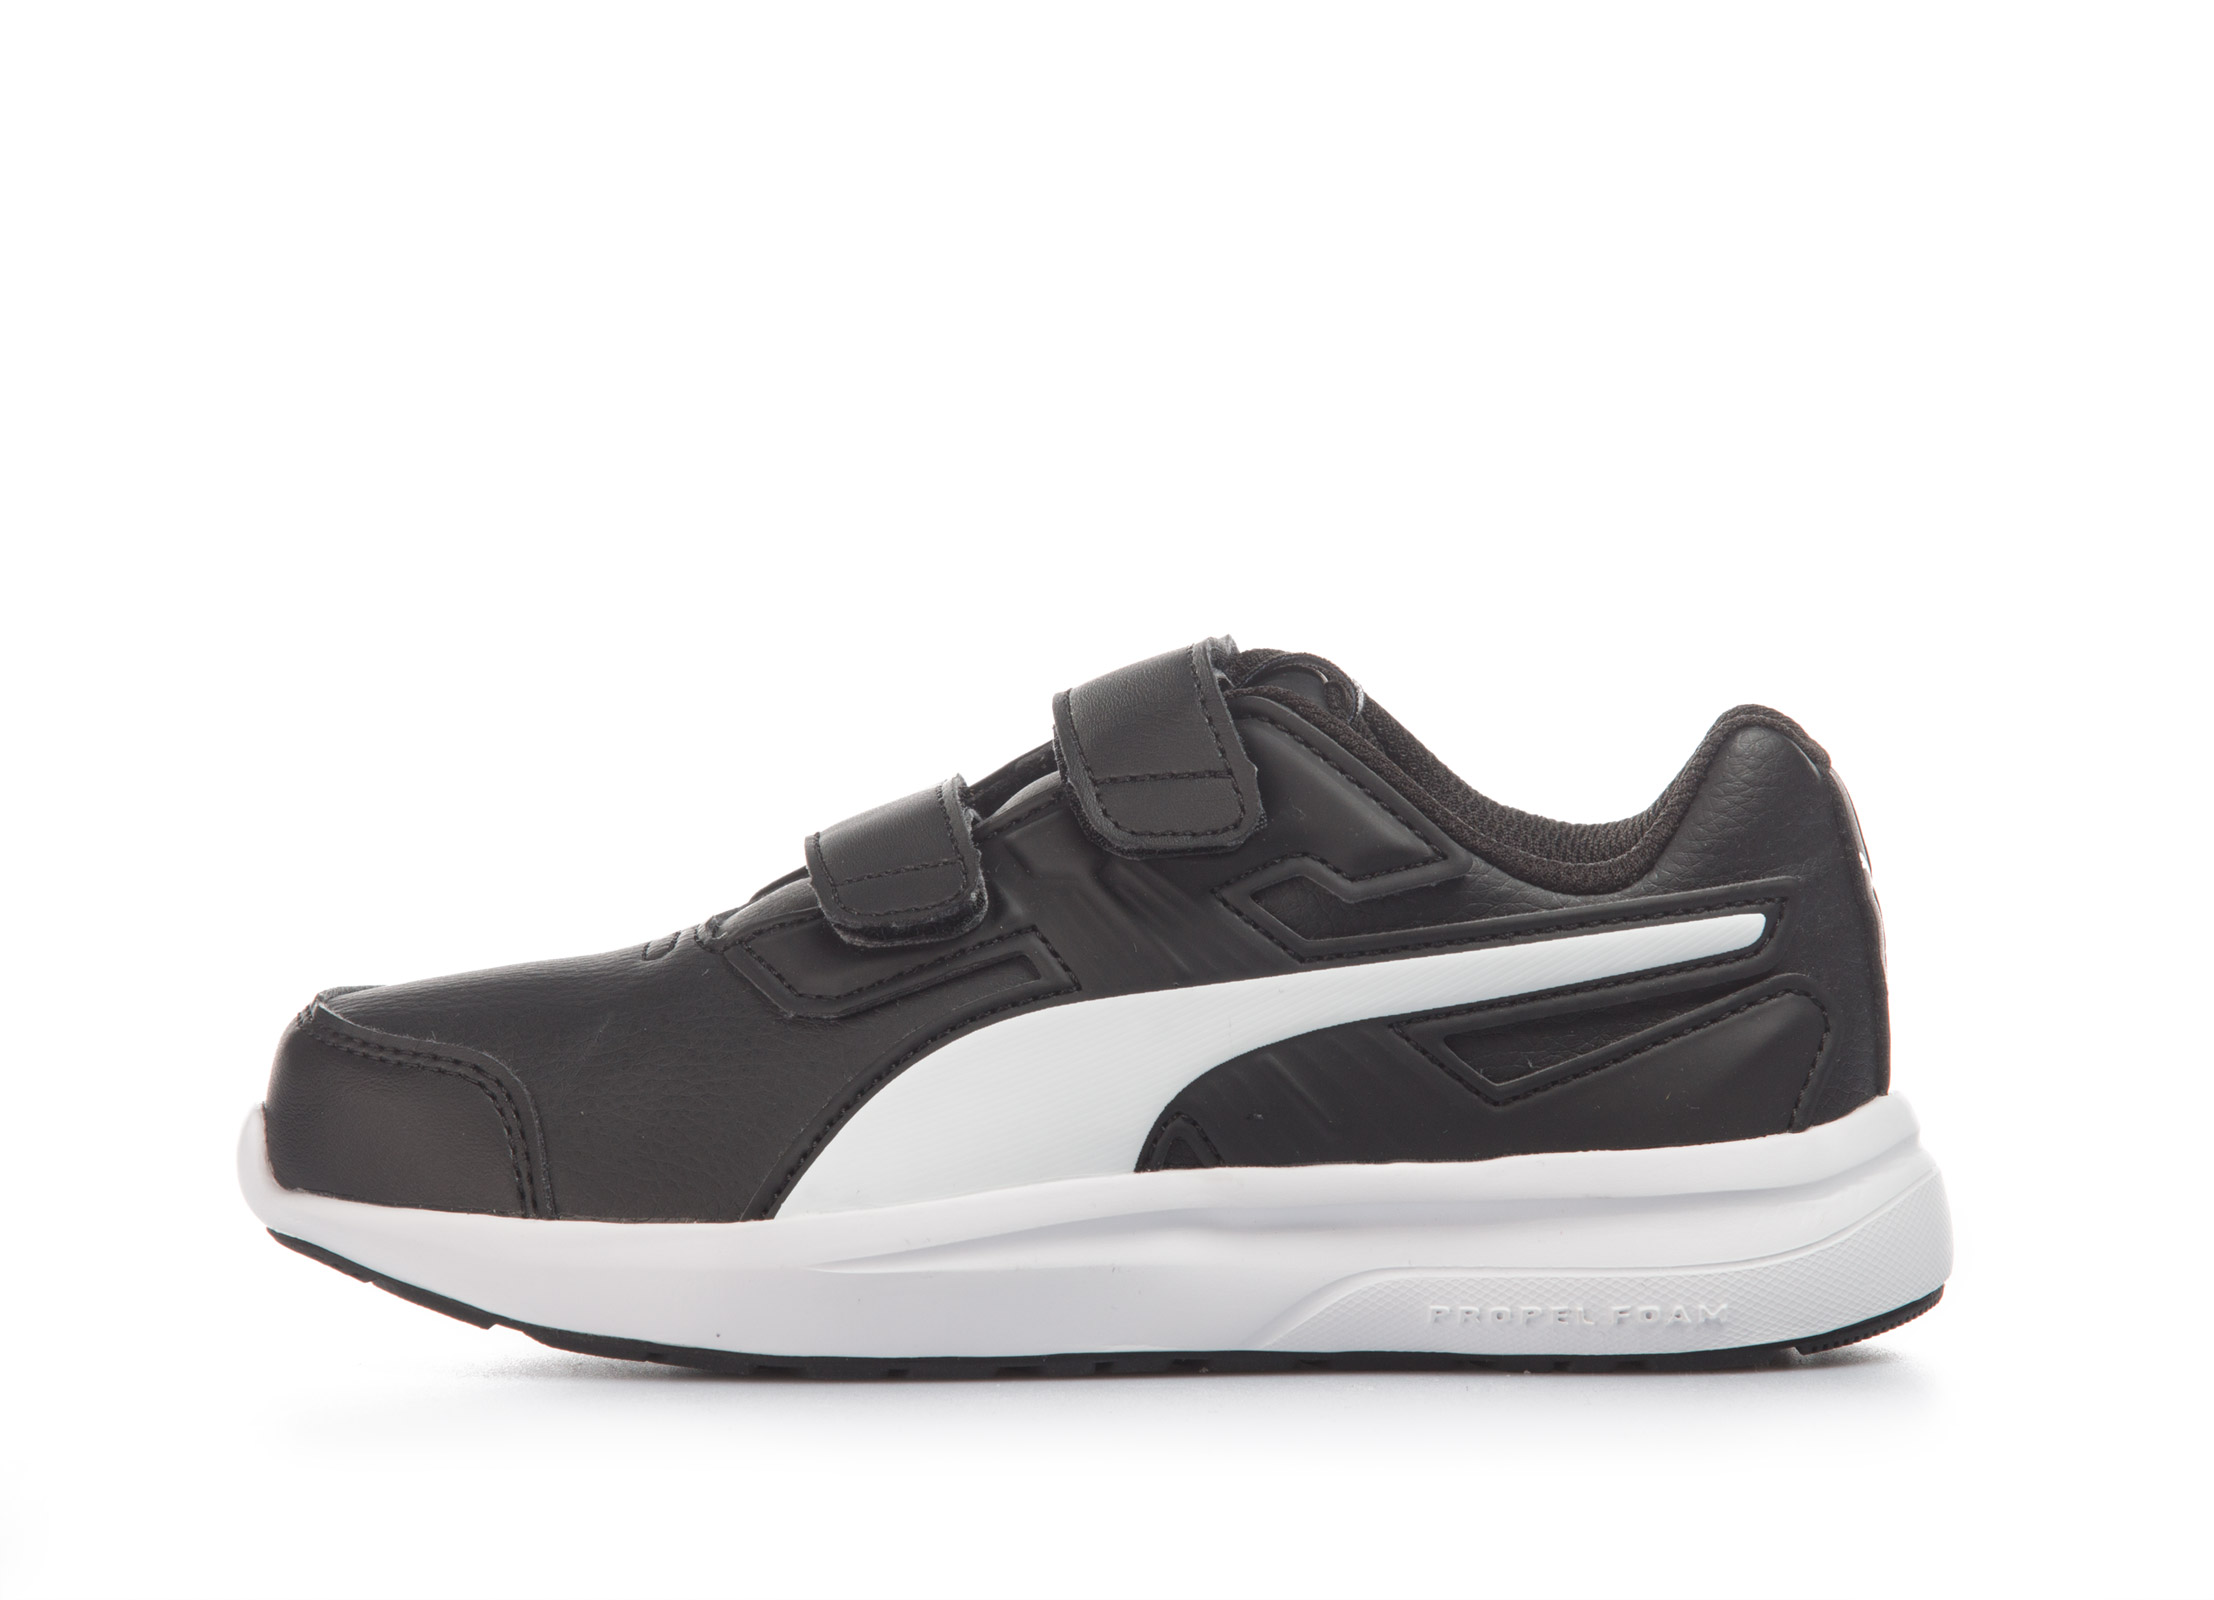 PUMA ESCAPER SL V 190185-01 Μαύρο